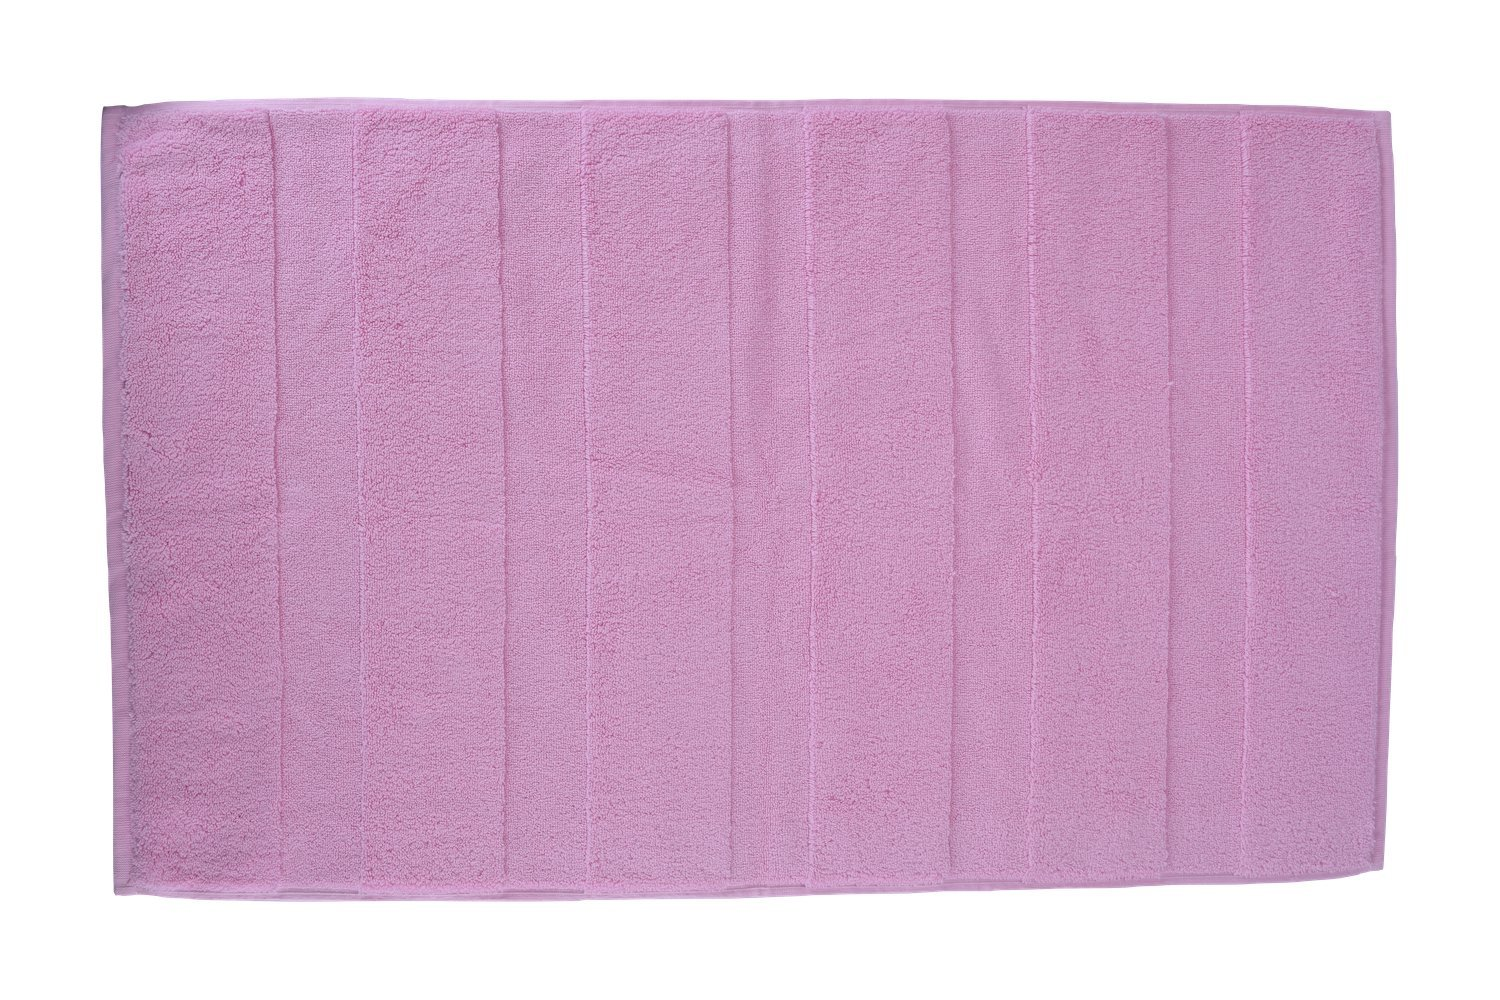 Made in TURKEY 1 Set, Rain 100/% Turkish Natural Soft Cotton Deluxe Hotel and Spa 3-Piece Cotton Bath Towel Set